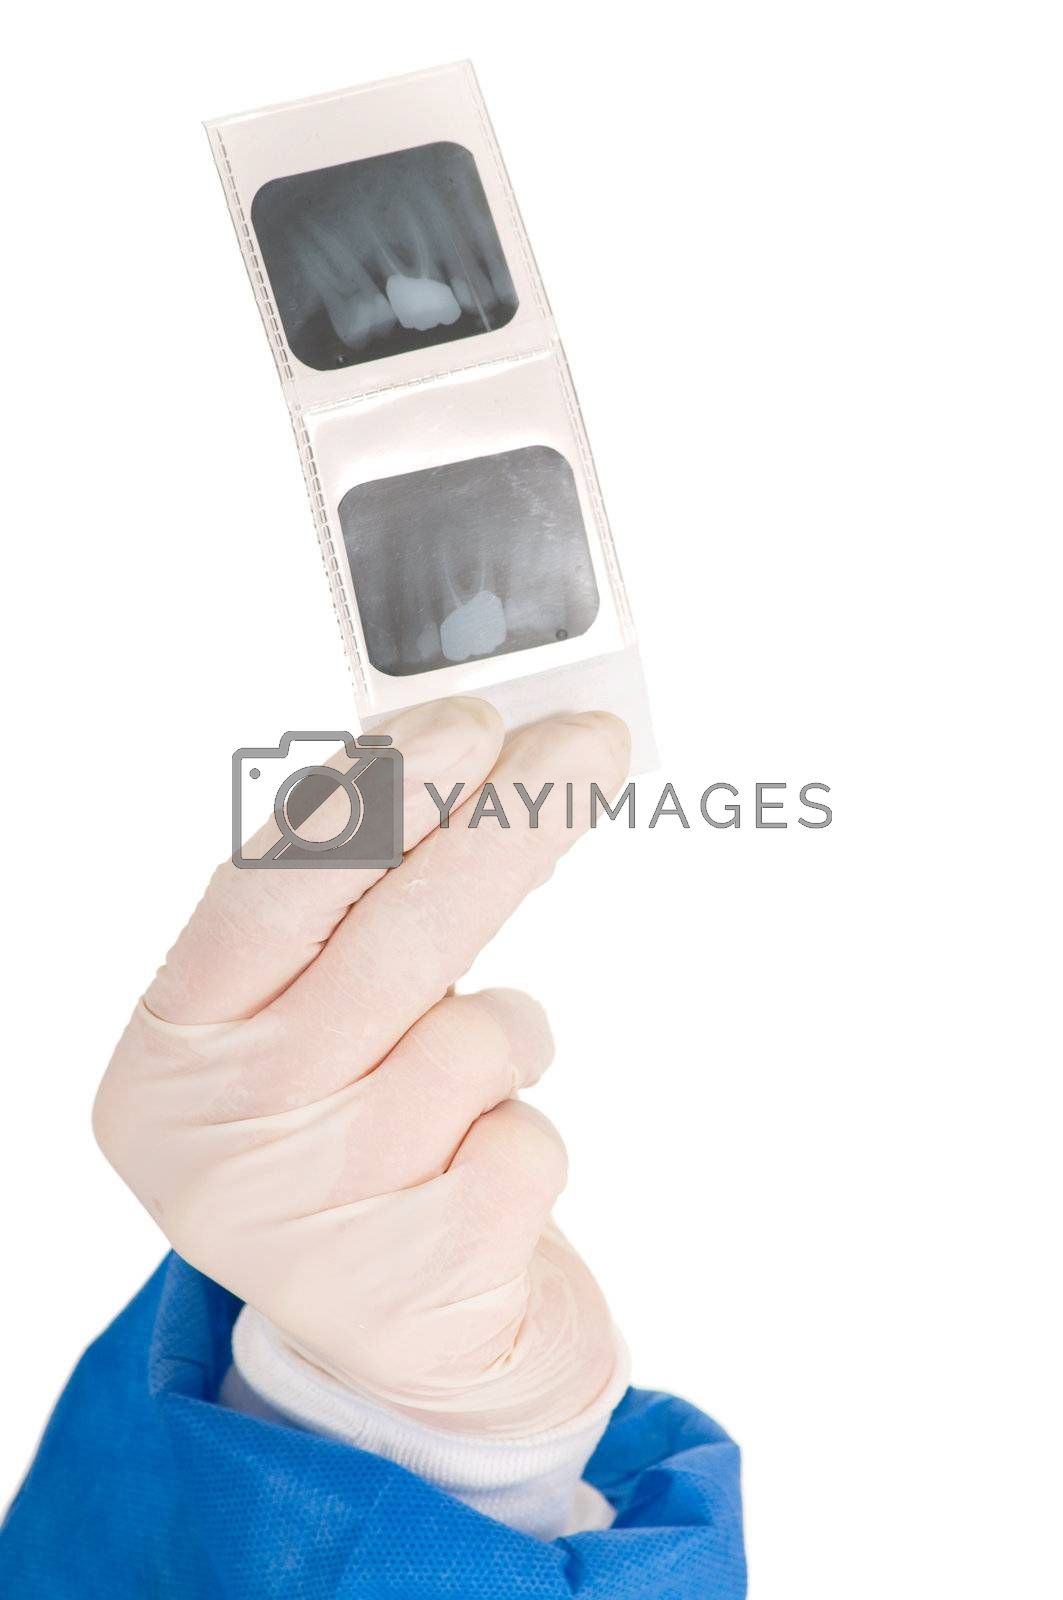 dentist holding dental radiography